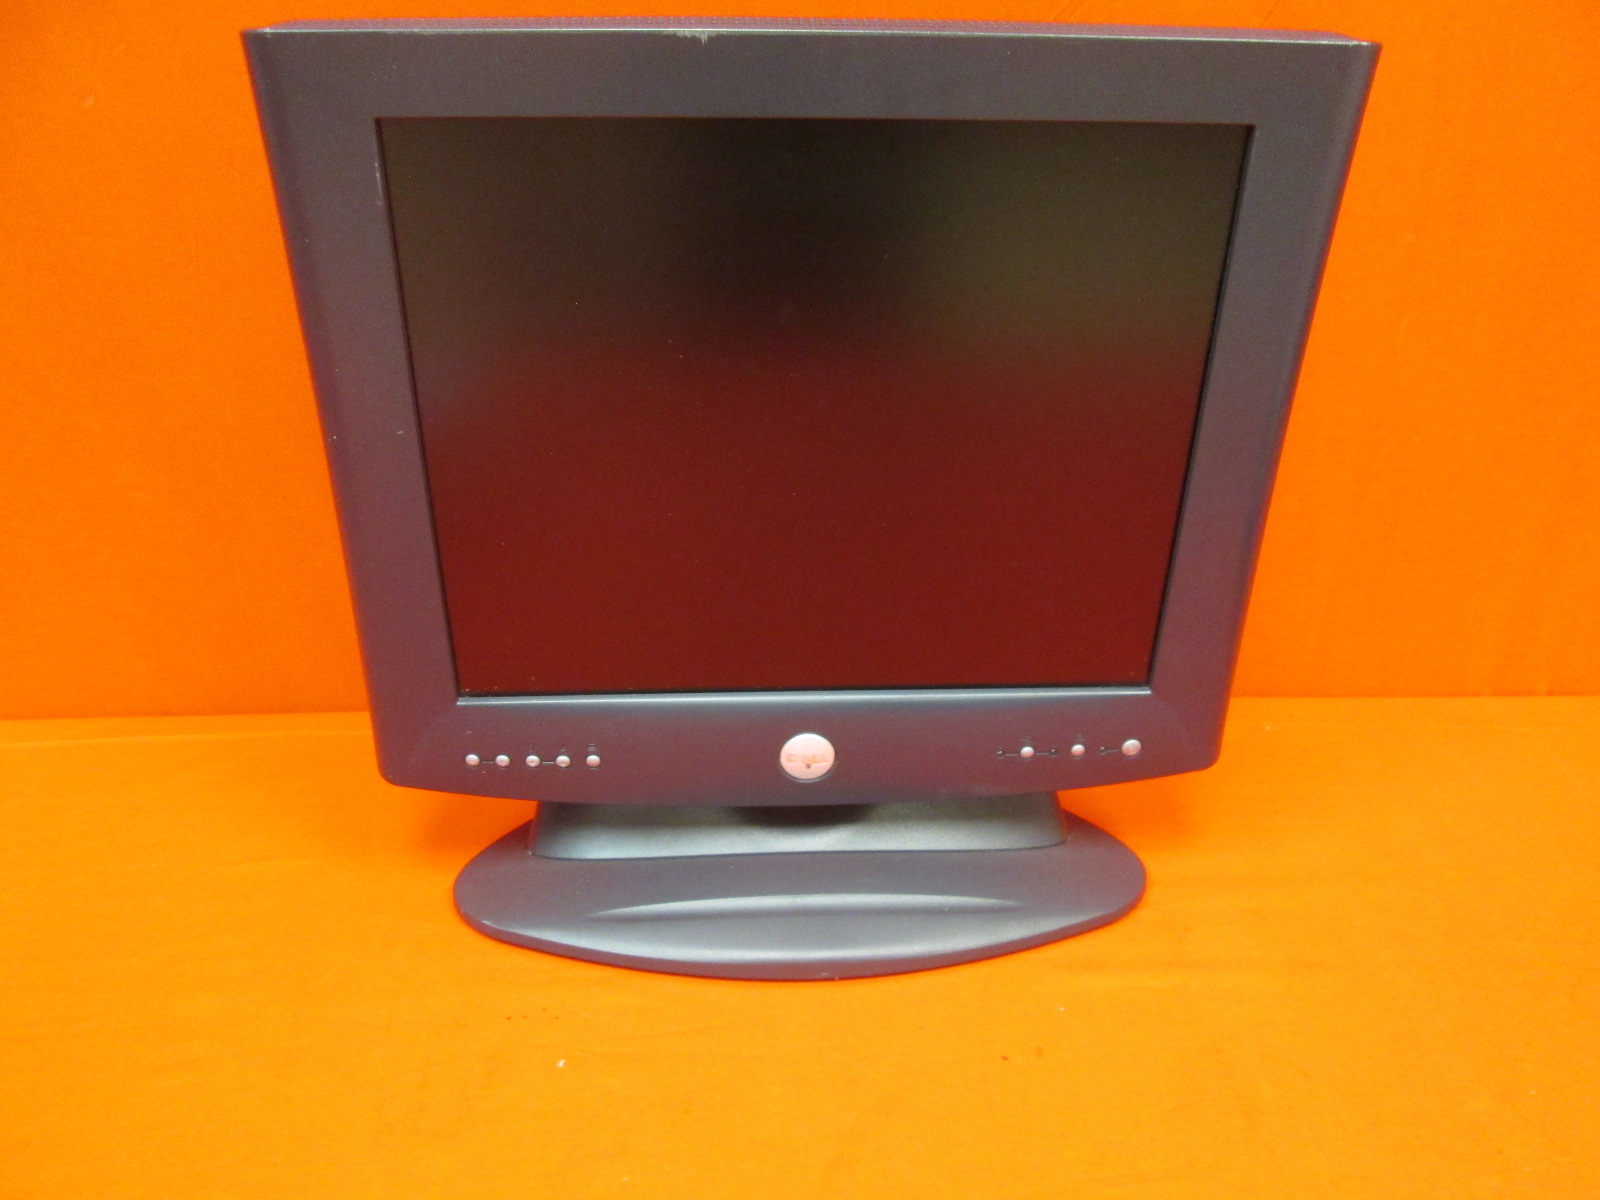 Dell Ultrasharp 1701FP 17 Inch LCD Monitor